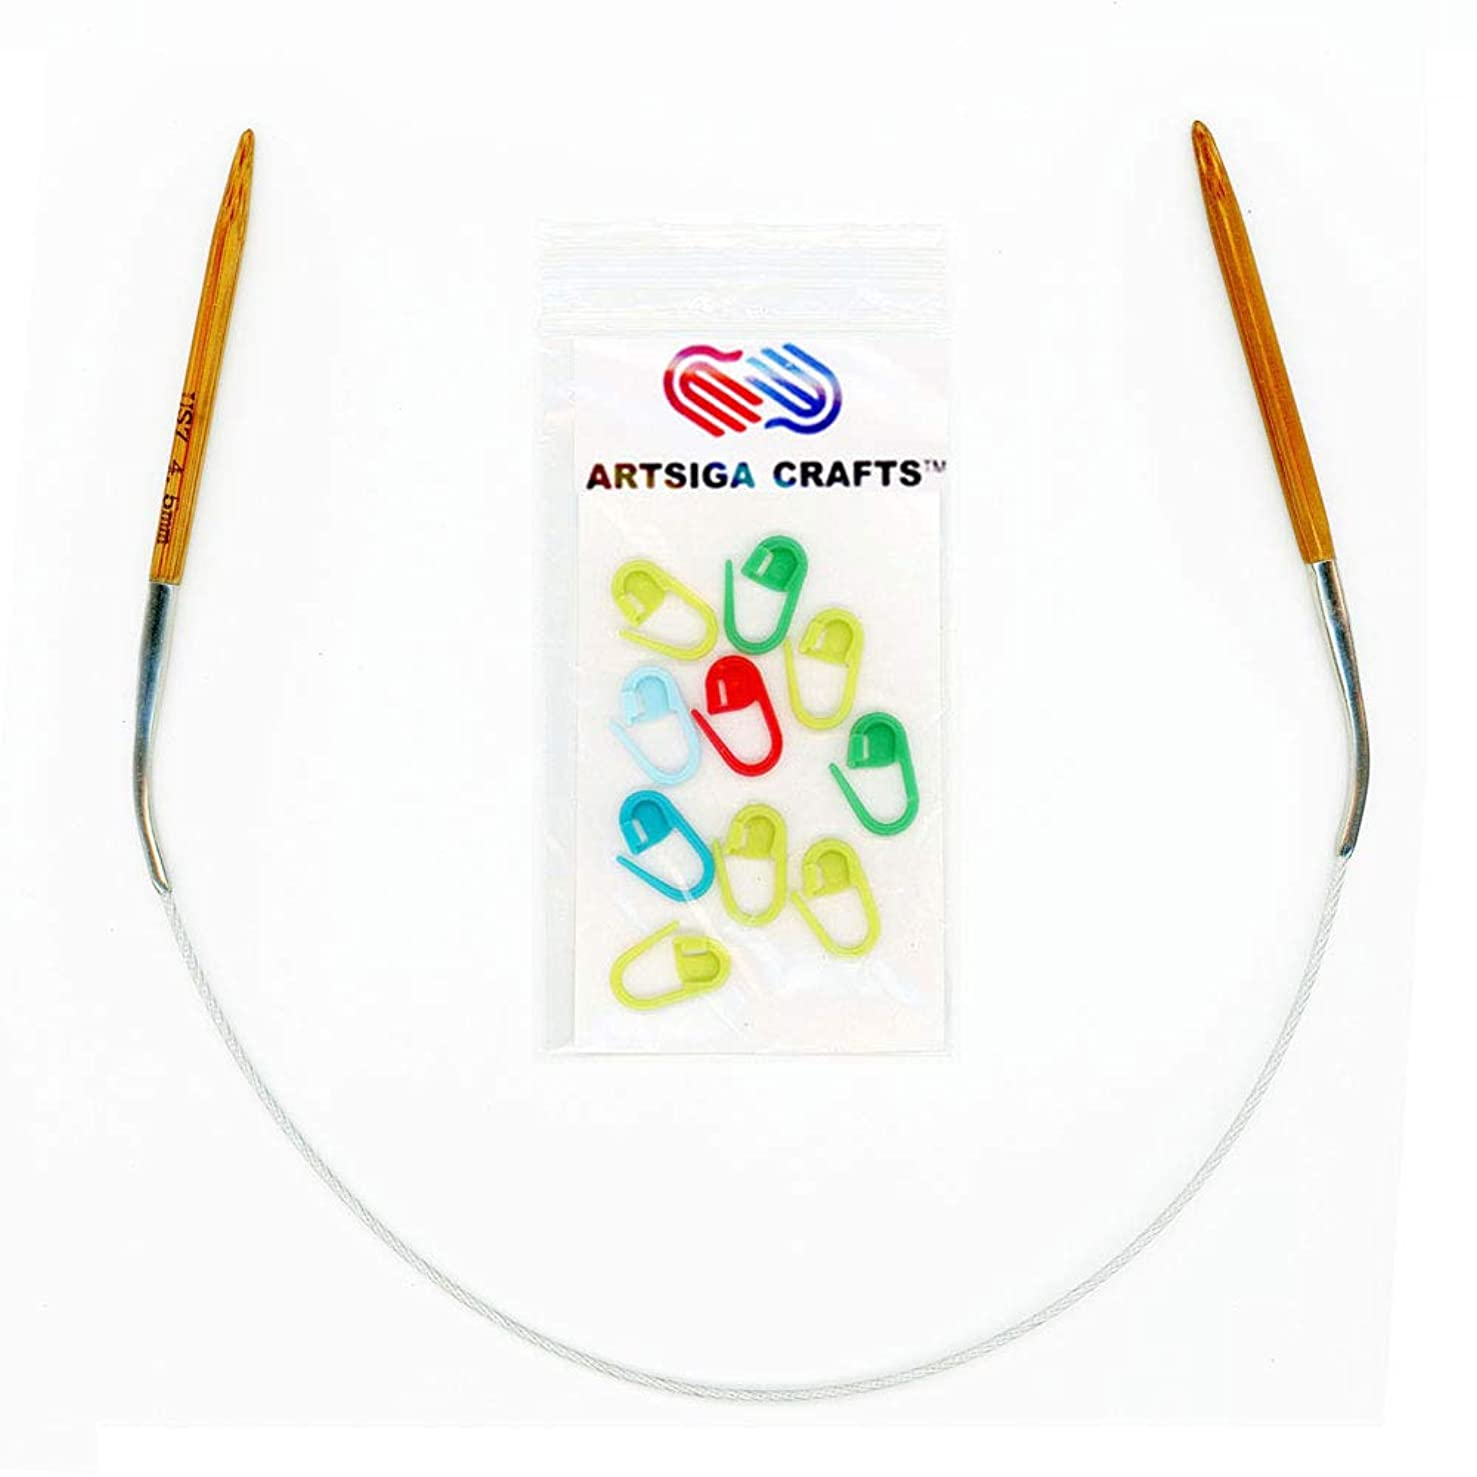 Artsiga Crafts Natures Bamboo Circular Knitting Needle Size 3.0mm Tip-to-Tip Length 16 inches Metal Cable with 10 Stitch Markers and Resealable Pouch